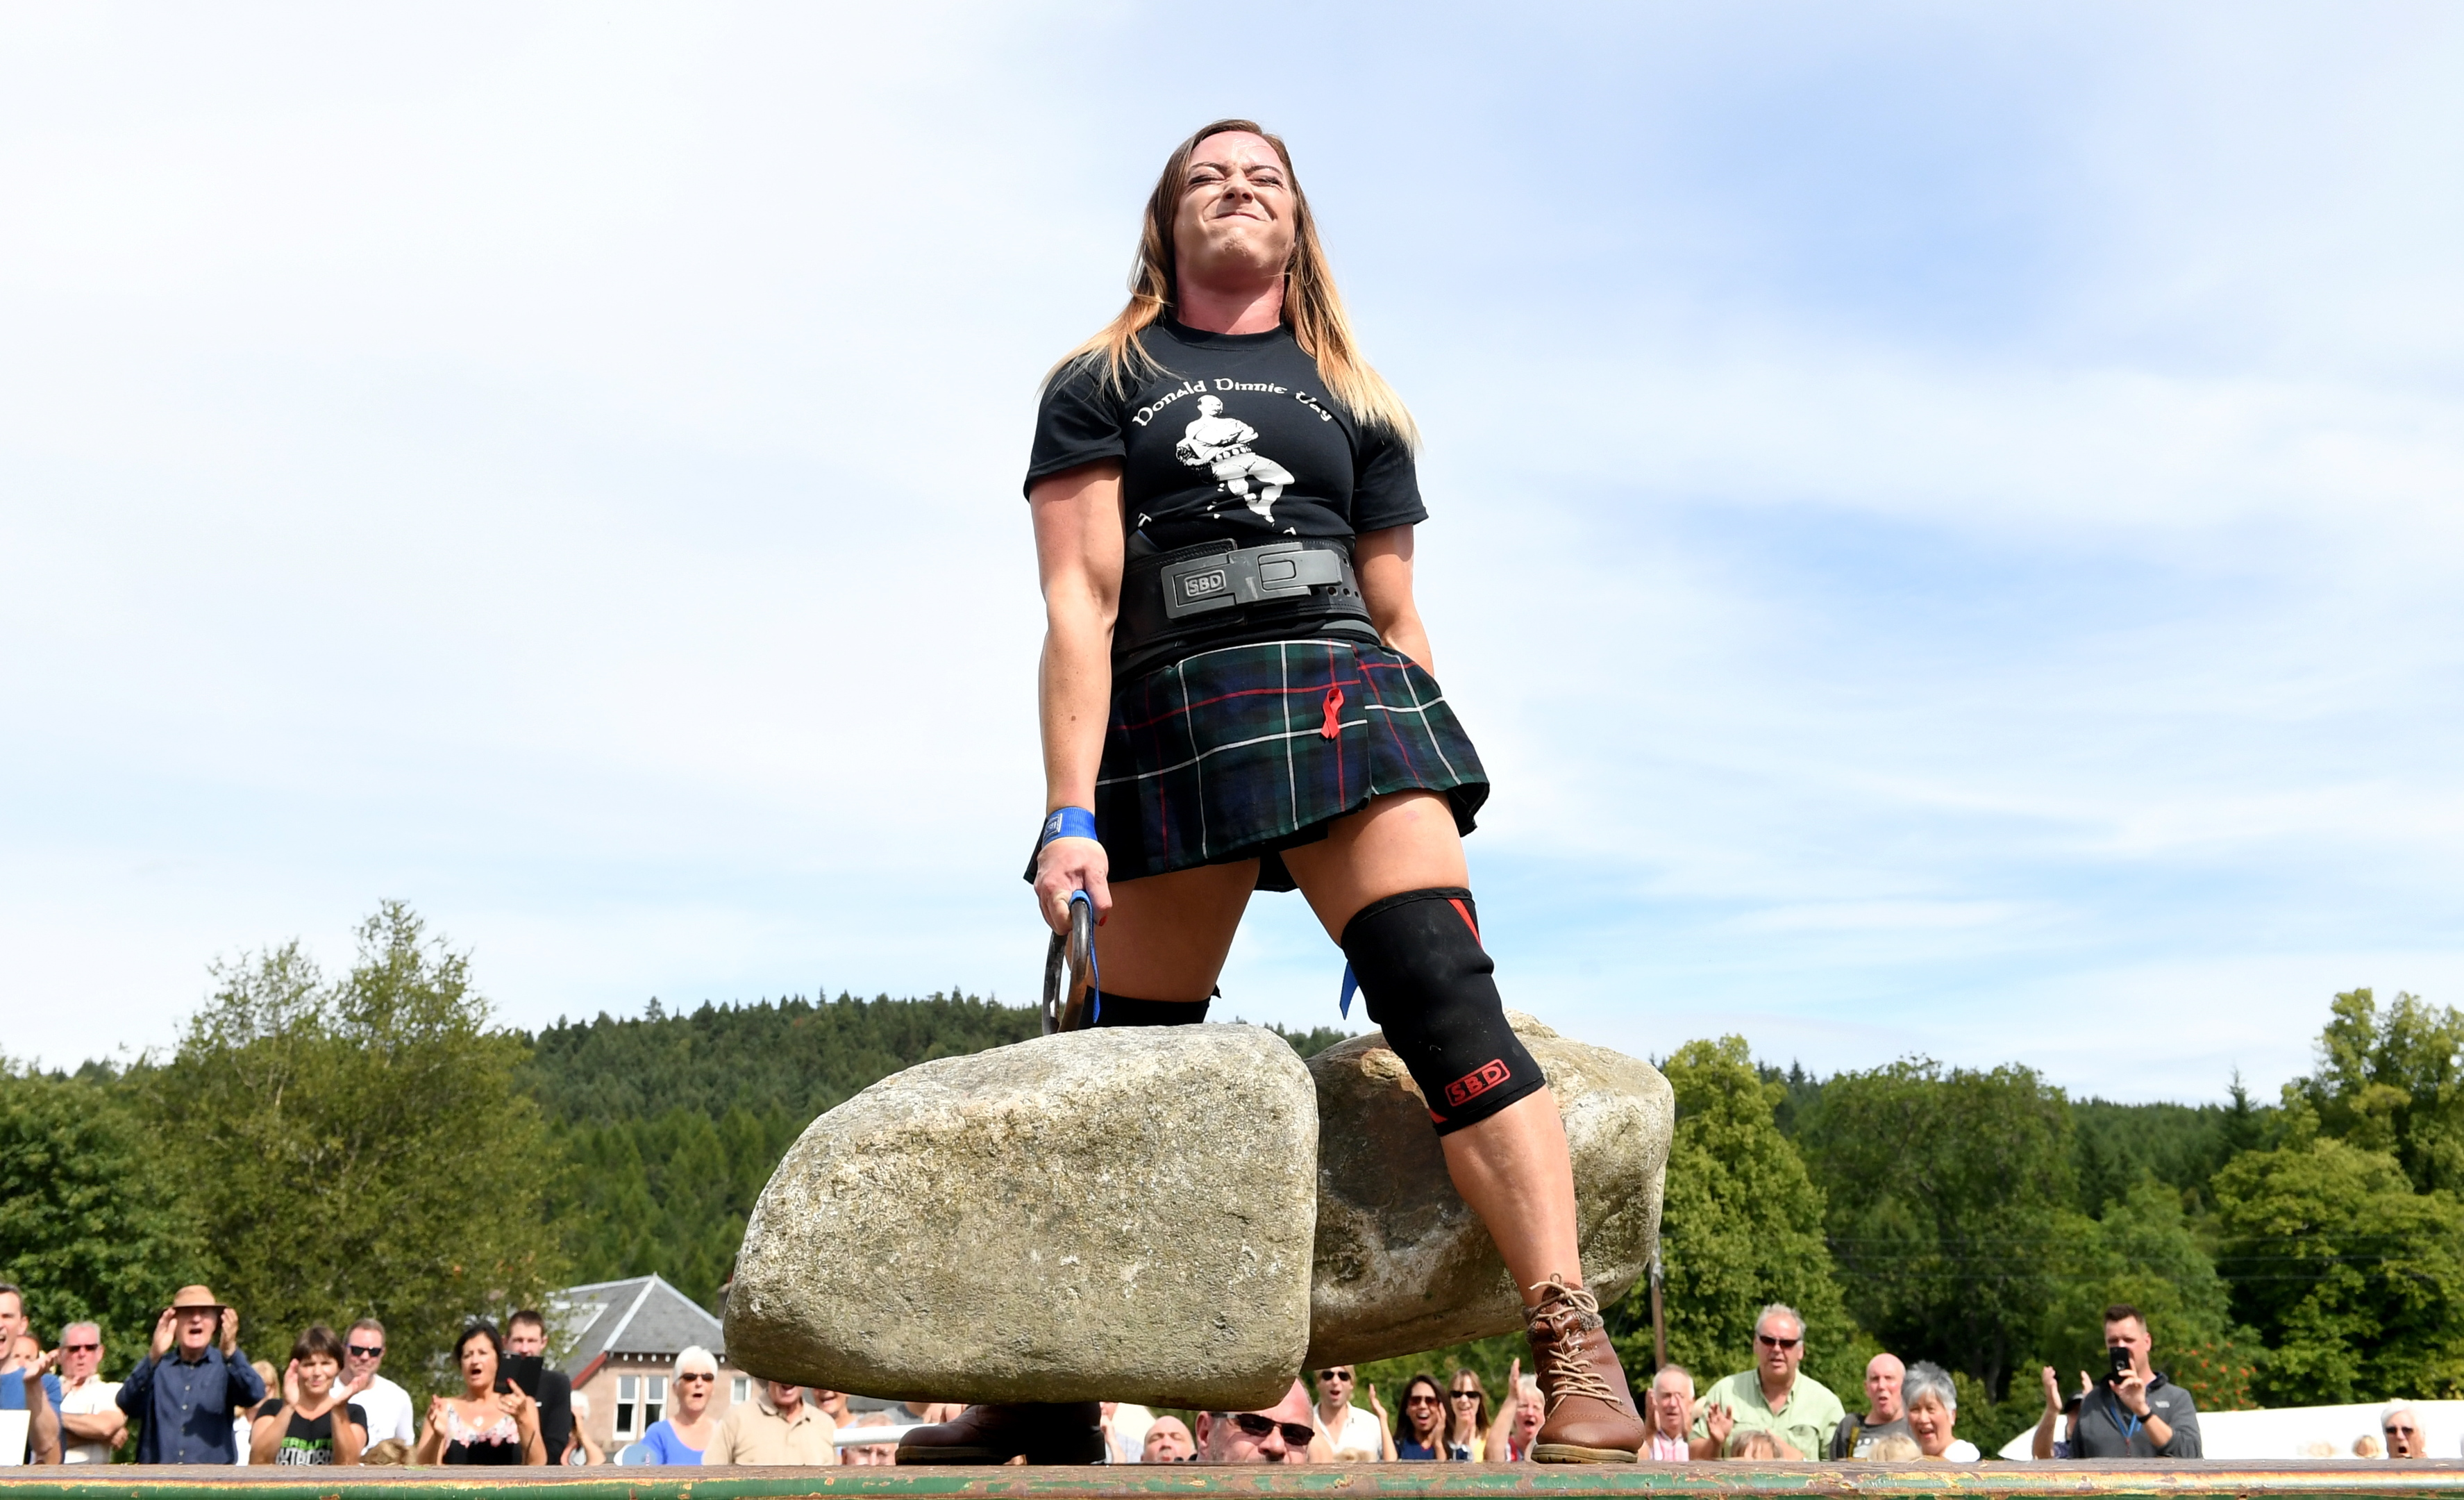 Lifter Leigh Holland-Keen completes a successful attempt